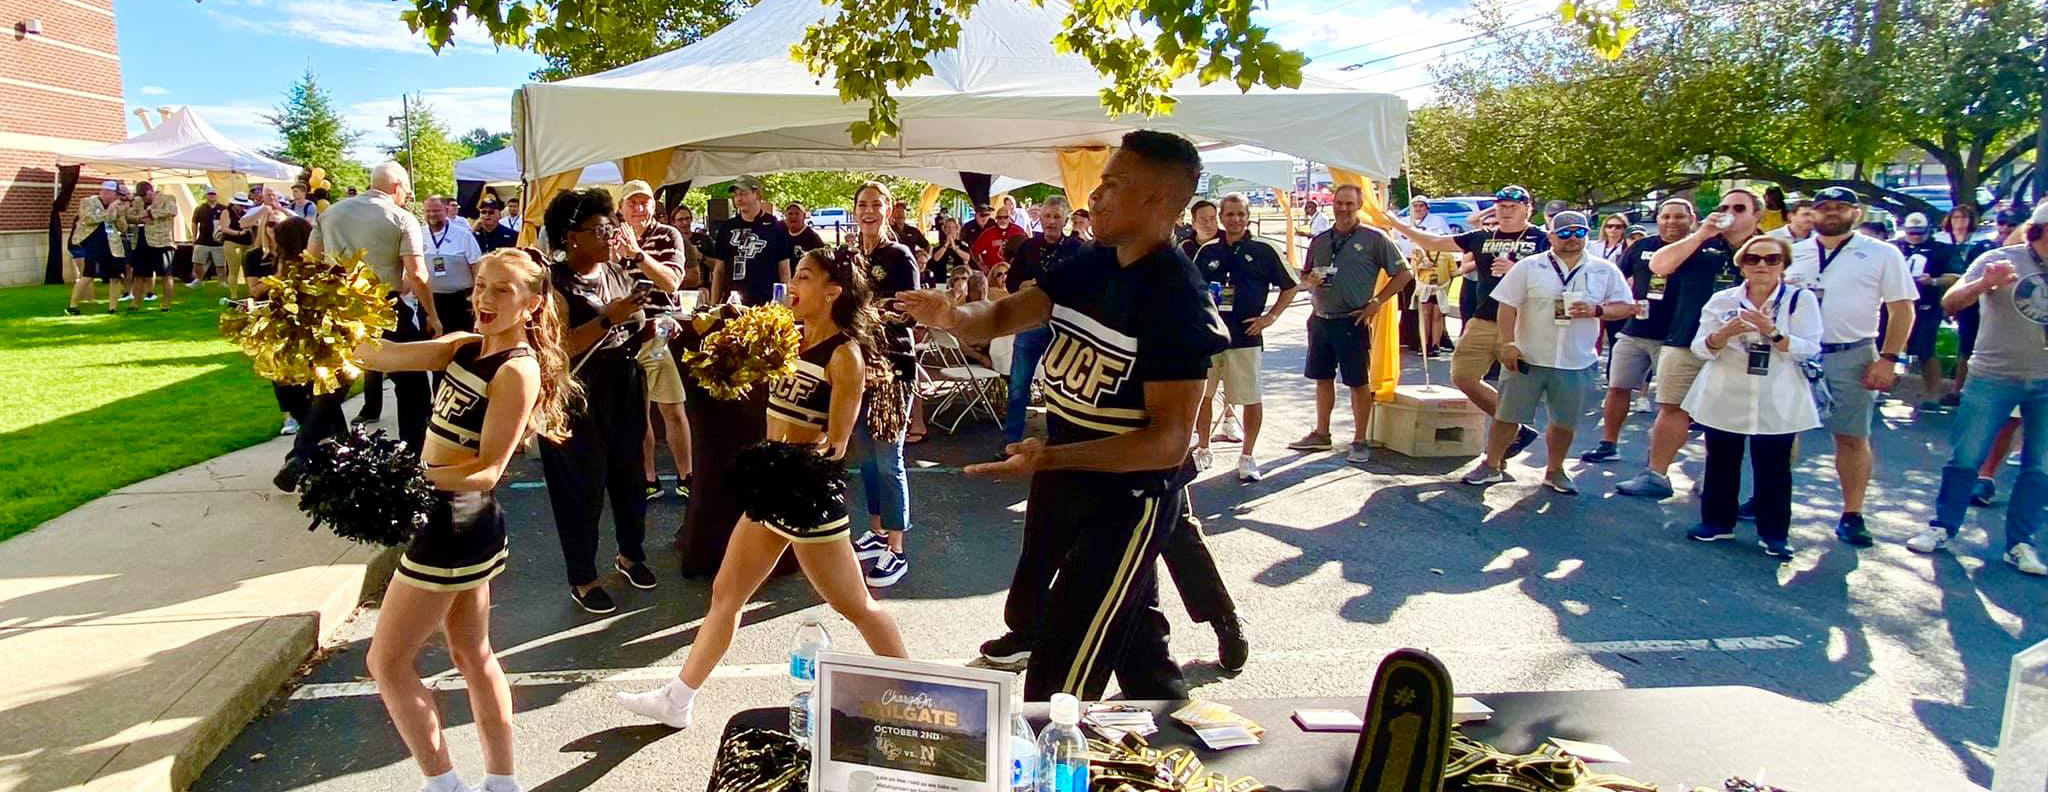 Cheerleader at UCF ChargeOn Tailgate event